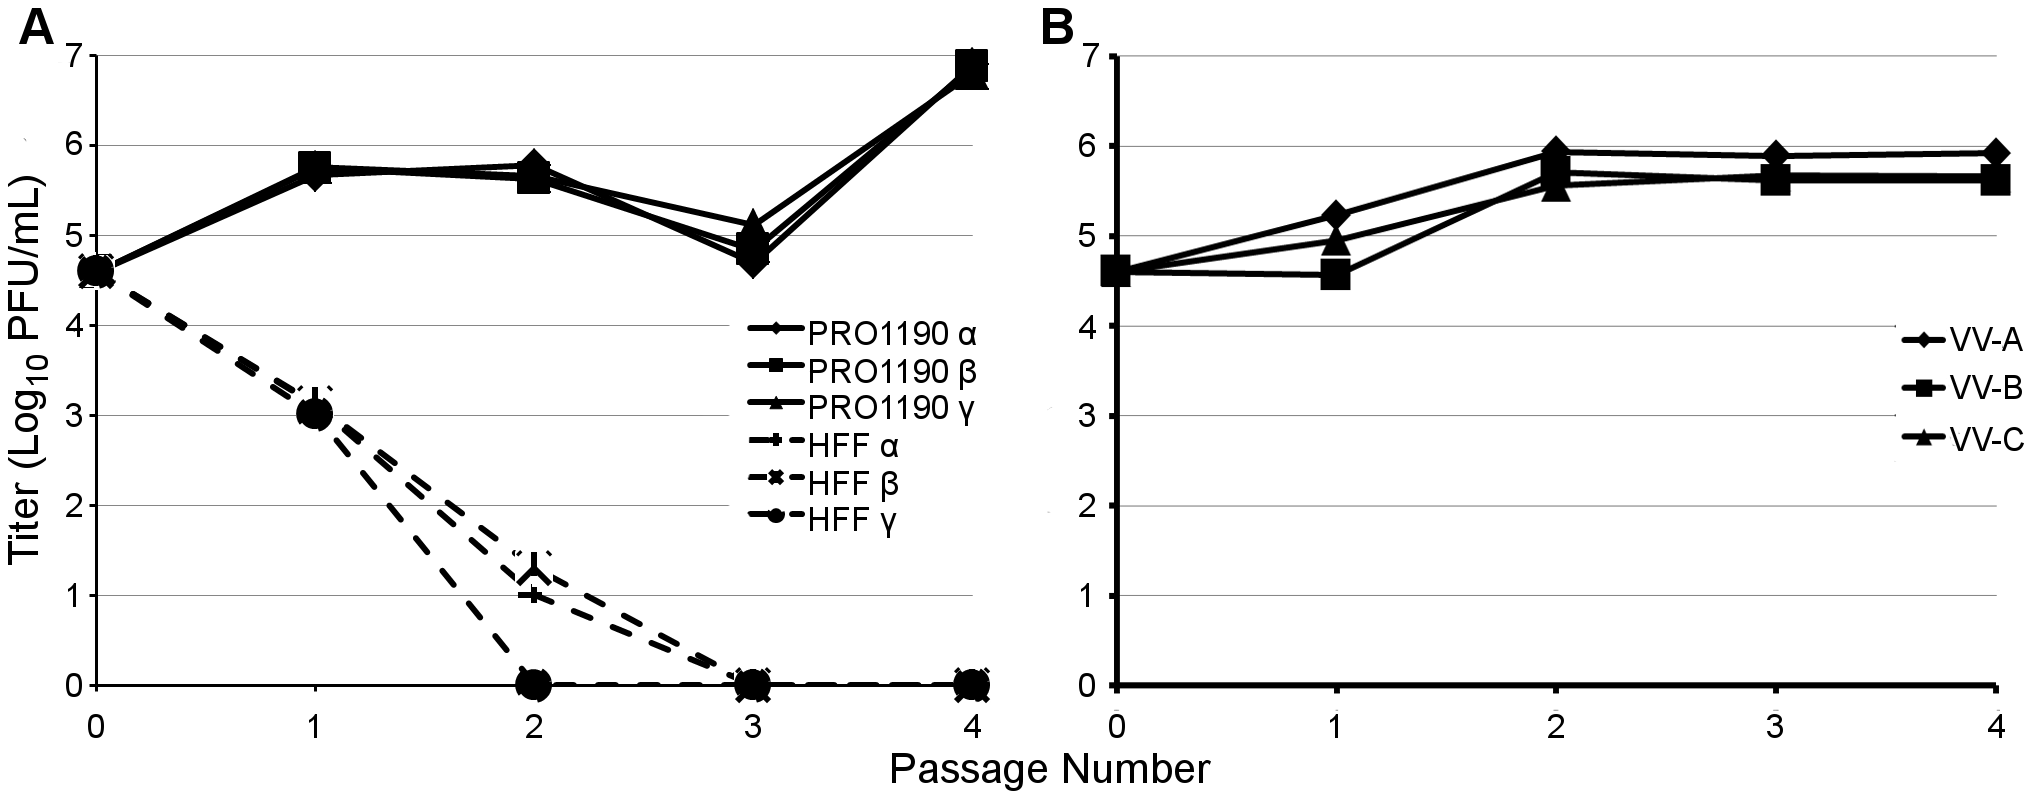 PRO1190-adapted viruses, but not VVΔEΔK+RhTRS1, stably replicate in HFF.